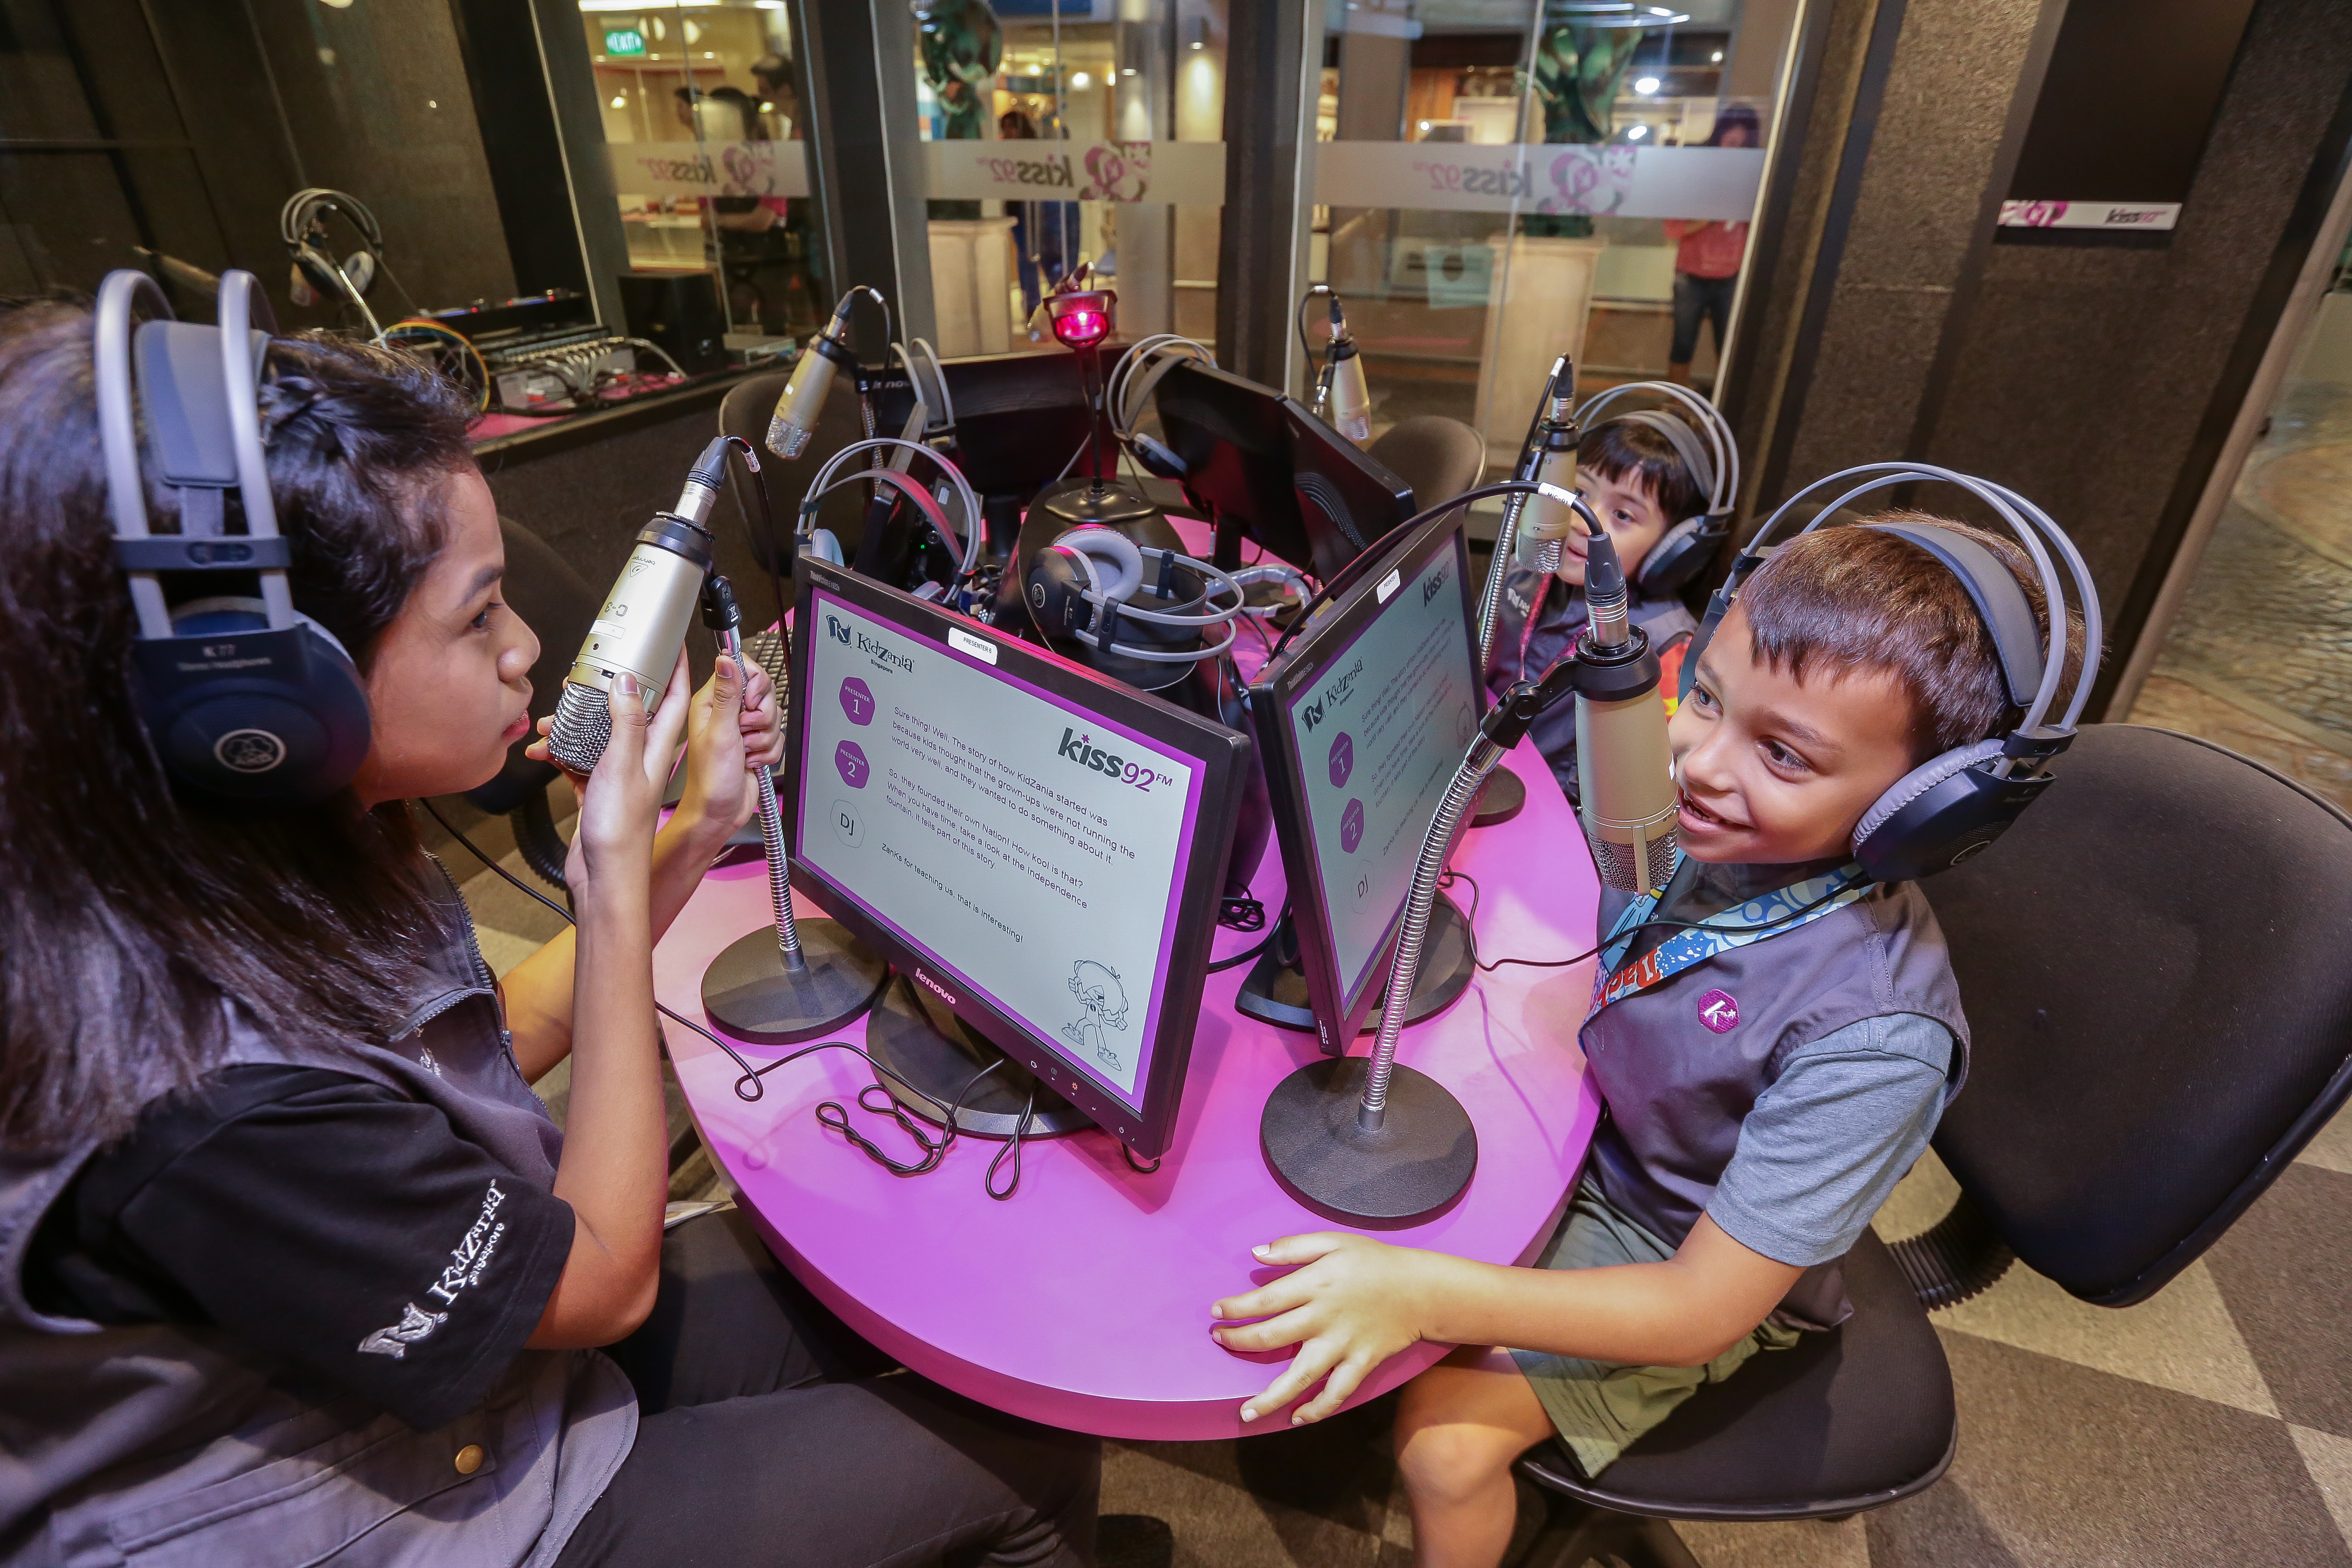 Play with cashless vending machines, robots and drones for the KidZ & Tech event at KidZania Singapore - Alvinology